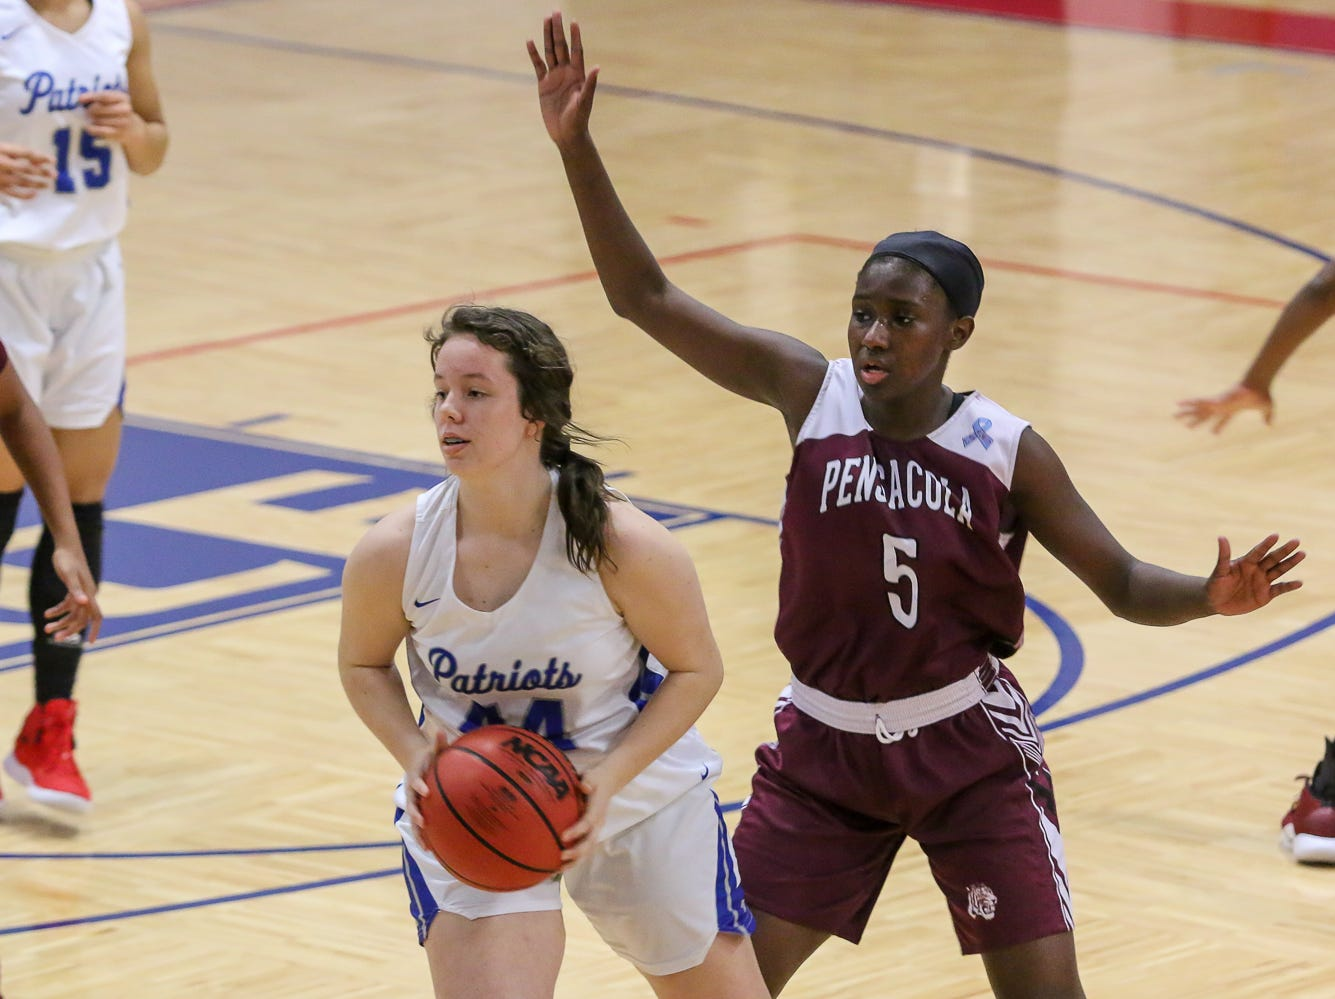 Pace's Paiten Rivera (44) turns and looks for a teammate to pass the ball to as PHS' Shy'Kera Miller (5) defends against her at Pace High School on Friday, January 4, 2019.